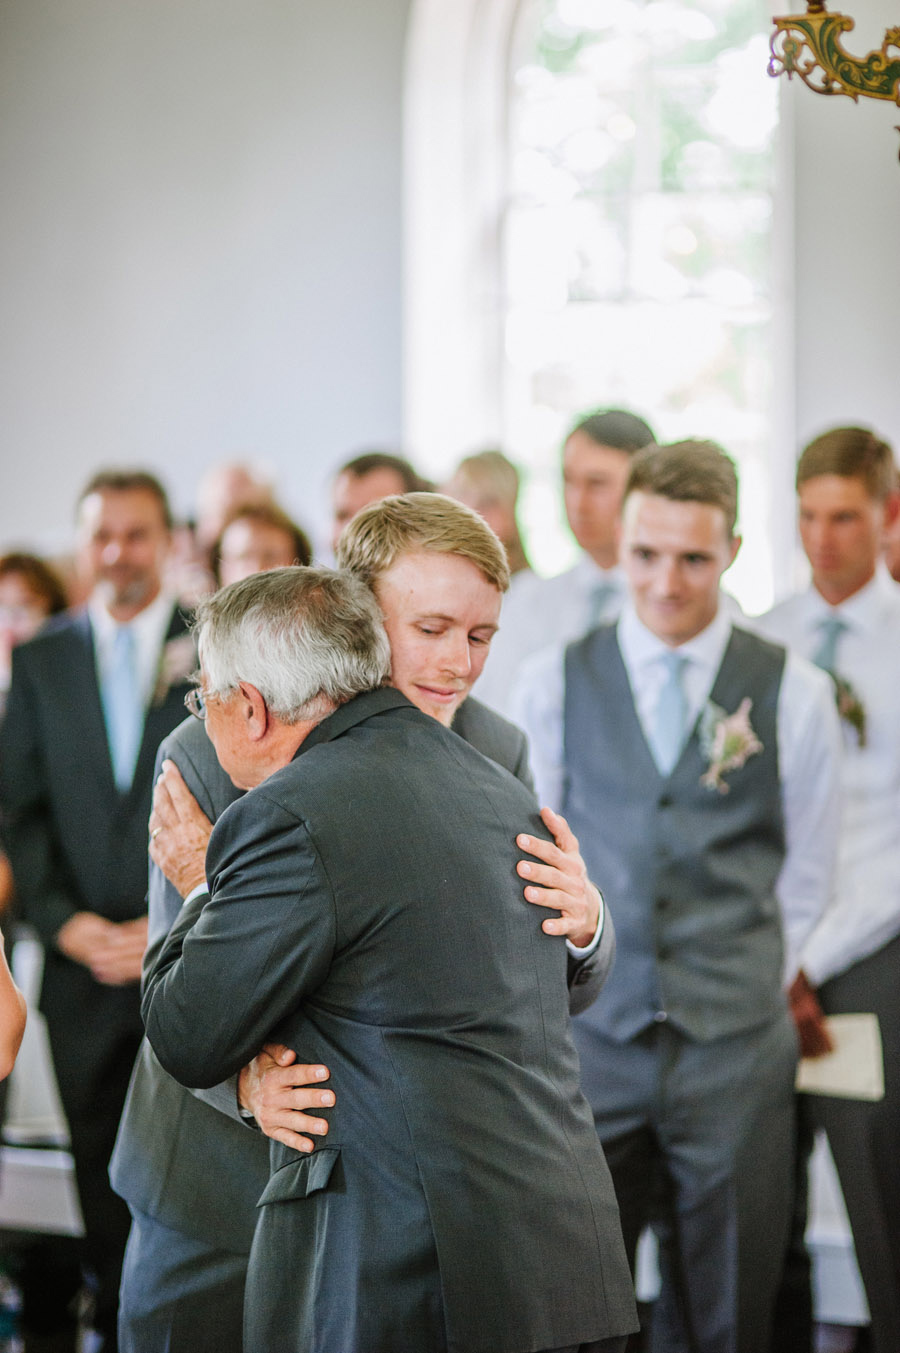 father of bride and groom share a moment during wedding in ryssby church